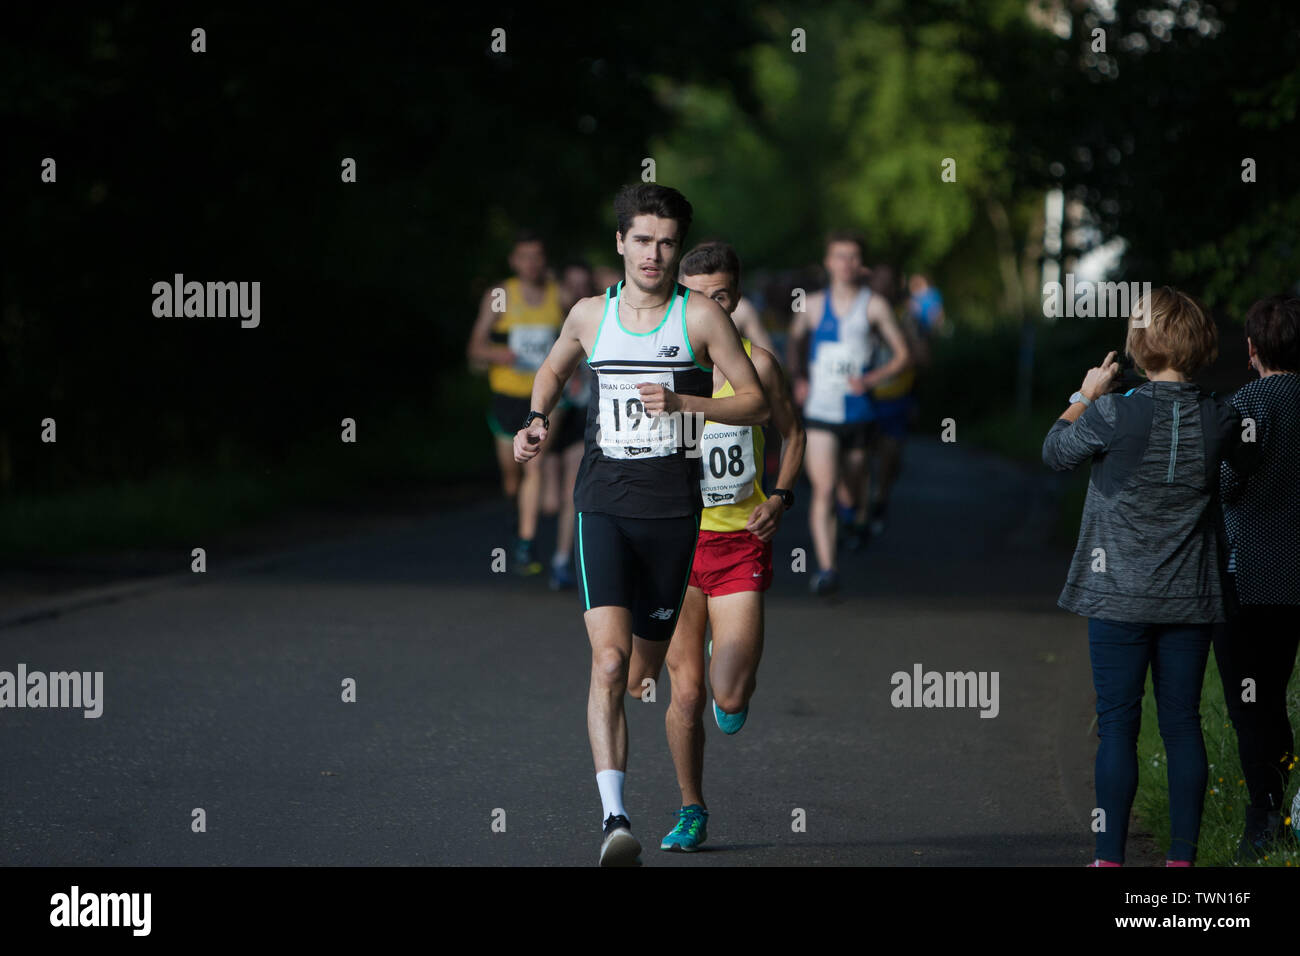 Glasgow, Scotland. 21st June, 2019. The Brian Goodwin Memorial 10km road race, hosted by Bellahouston Harriers running club, and held in Glasgow's scenic Pollok Country Park, was tonight won by Olympian Callum Hawkins in a time of 29minutes 06secs. (Hawkins wears Bib 199, Kilbarchan AAC); 2nd male was Jamie Crow (Bib 108, Central AC)) with a Personal Best time of 29min 43sec, and 3rd male was James Donald (30:11, Bib 130, Dundee Hawkhill Harriers).  Credit: jeremy sutton-hibbert/Alamy Live News - Stock Image